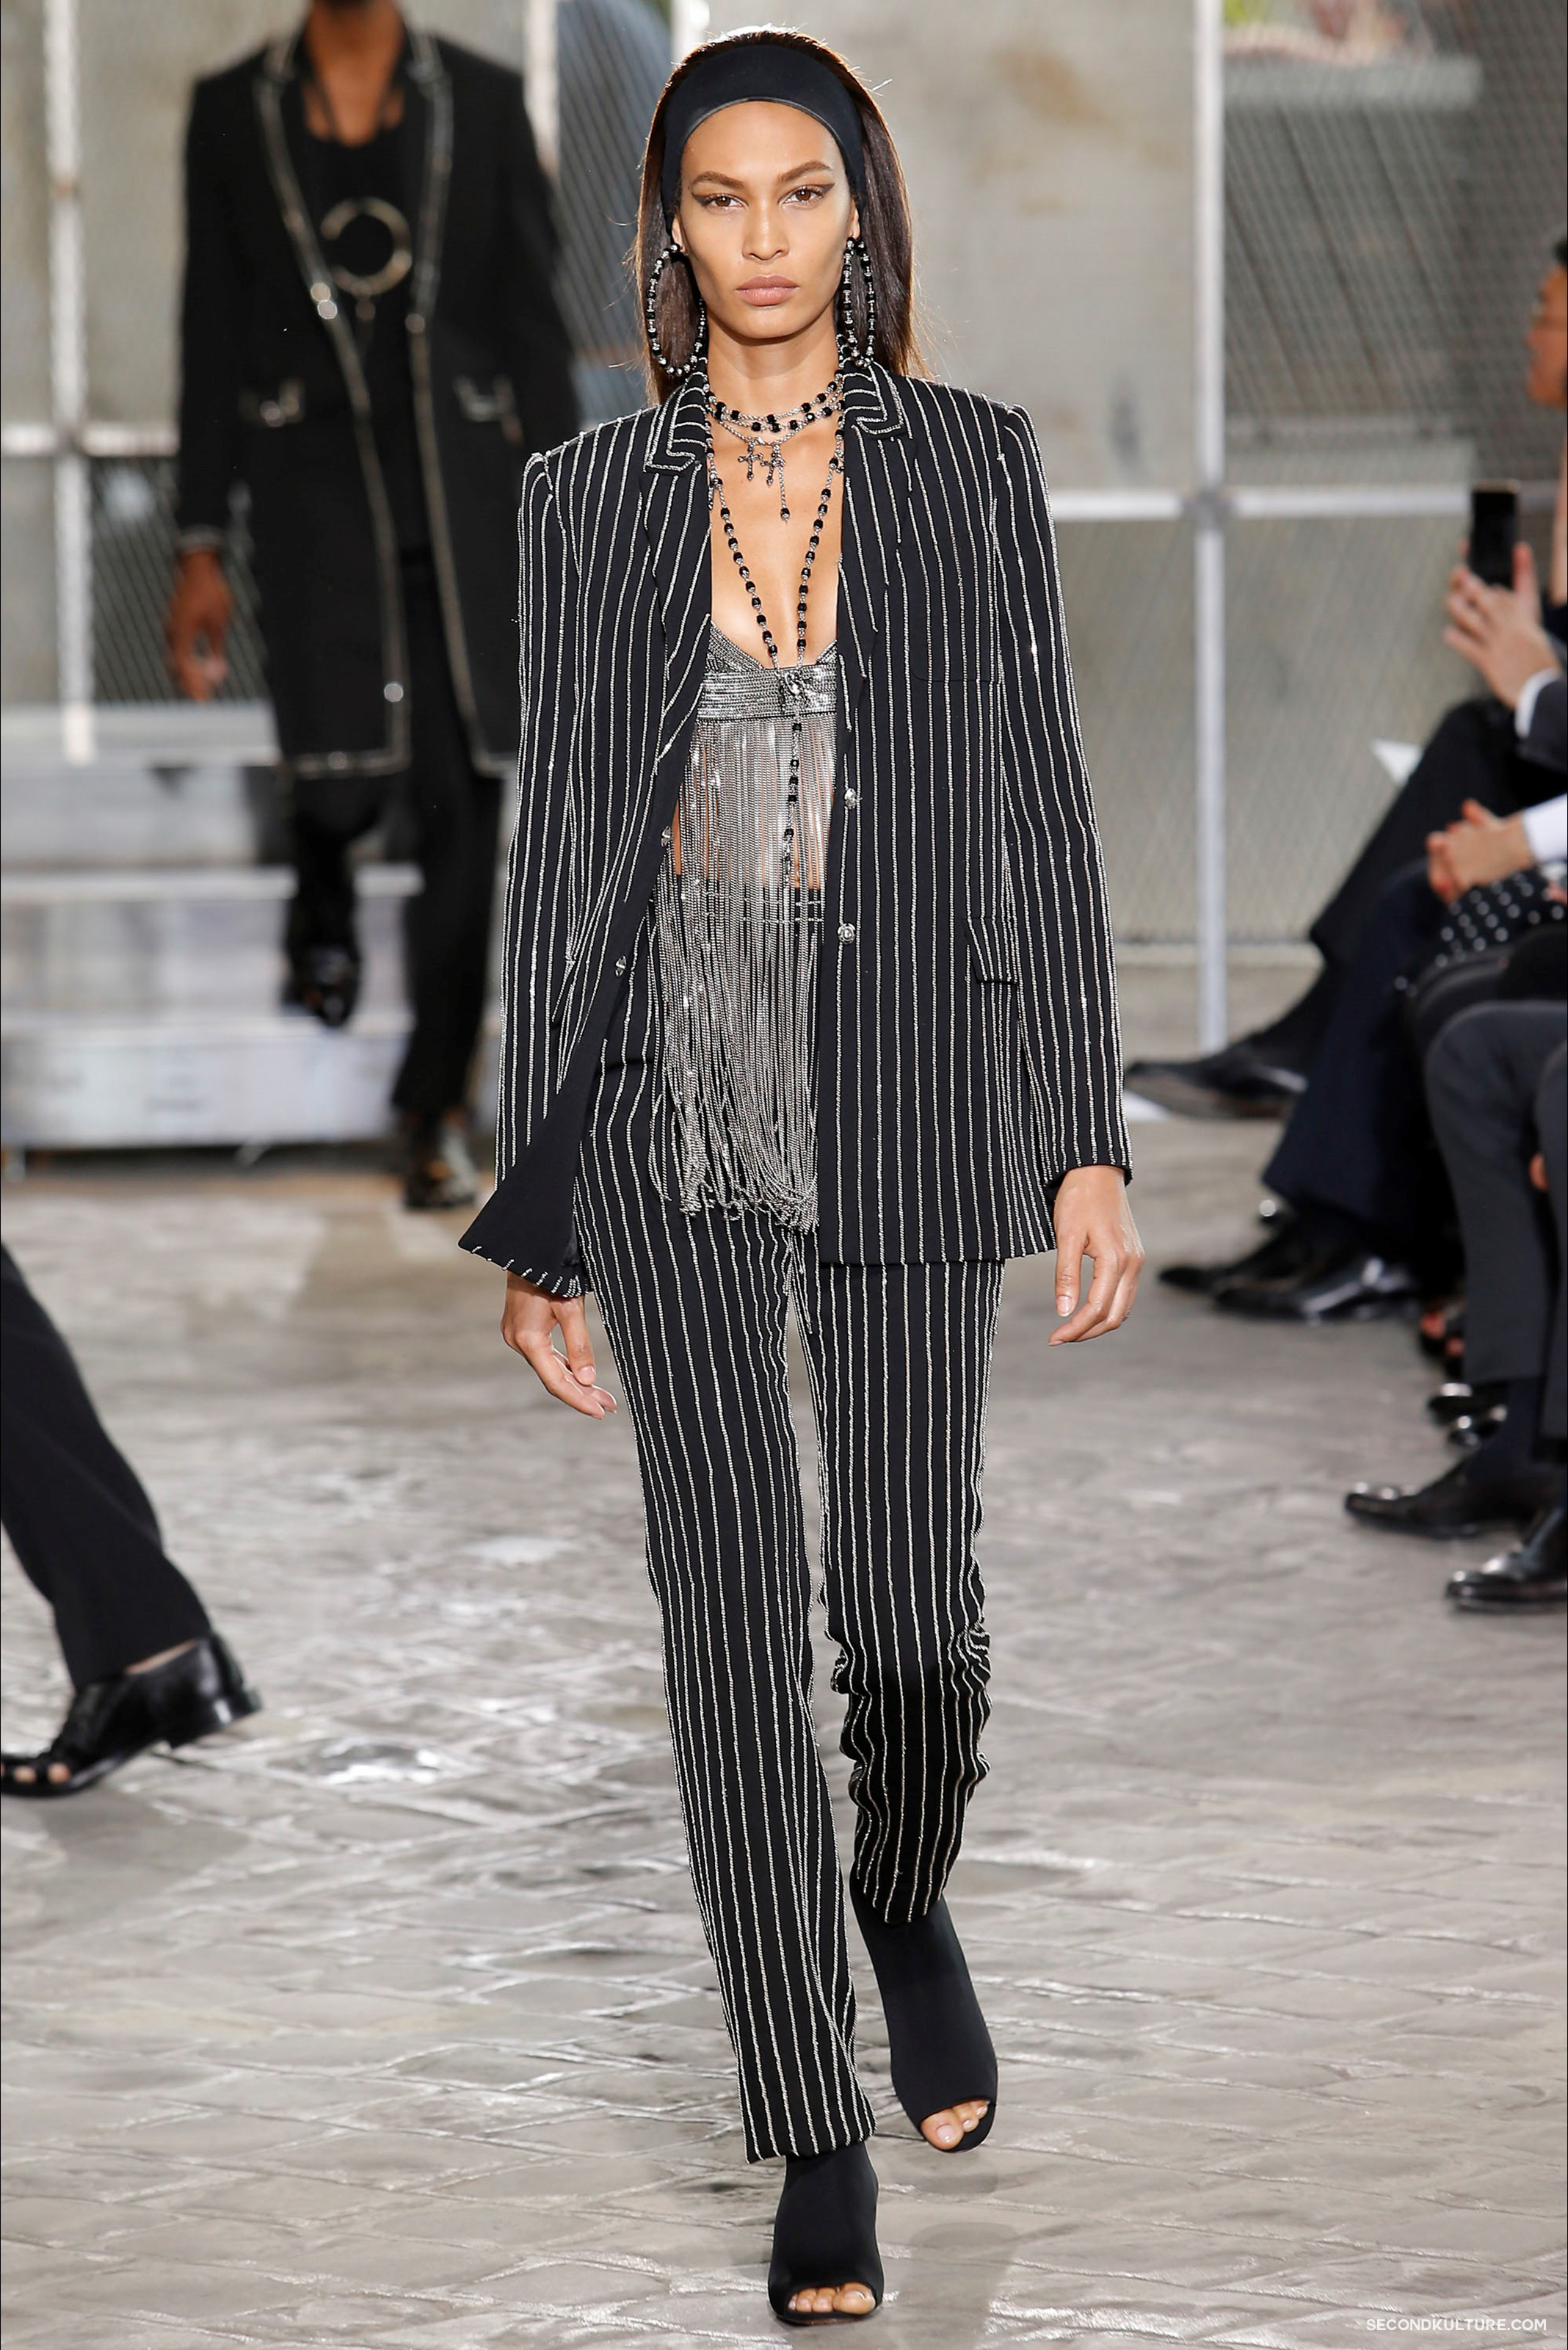 Givenchy Spring Summer 2016 Menswear Jesus Religion Chain Runway Show Look 58